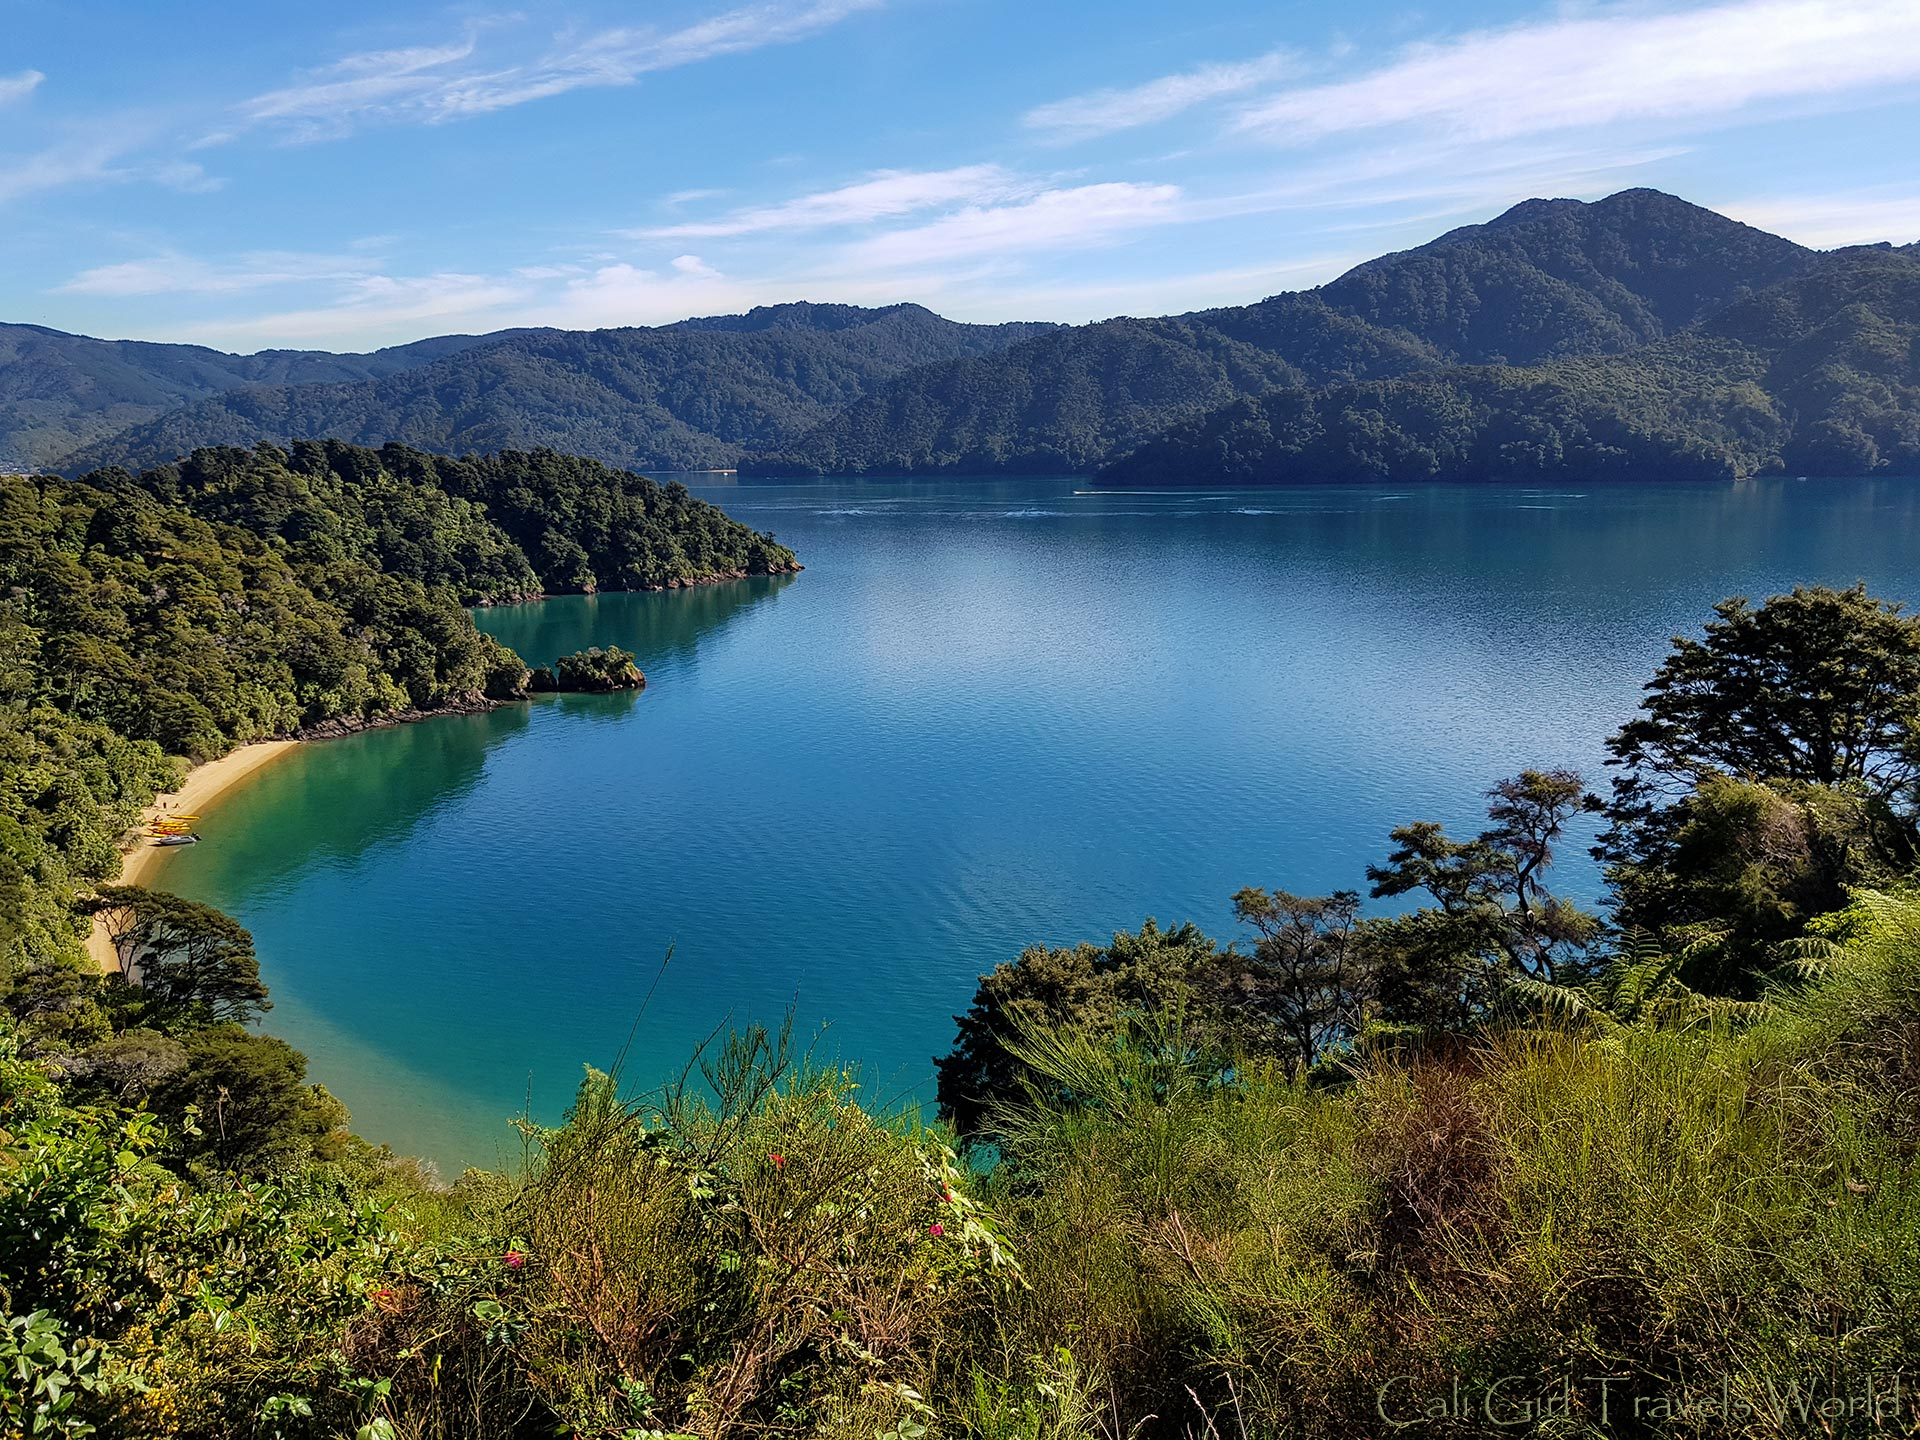 The beautiful Picton Sound in Queen Charlotte Sound in the Marlborough Sounds, with a hidden secret beach with kayaks at the bottom in South Island, New Zealand.